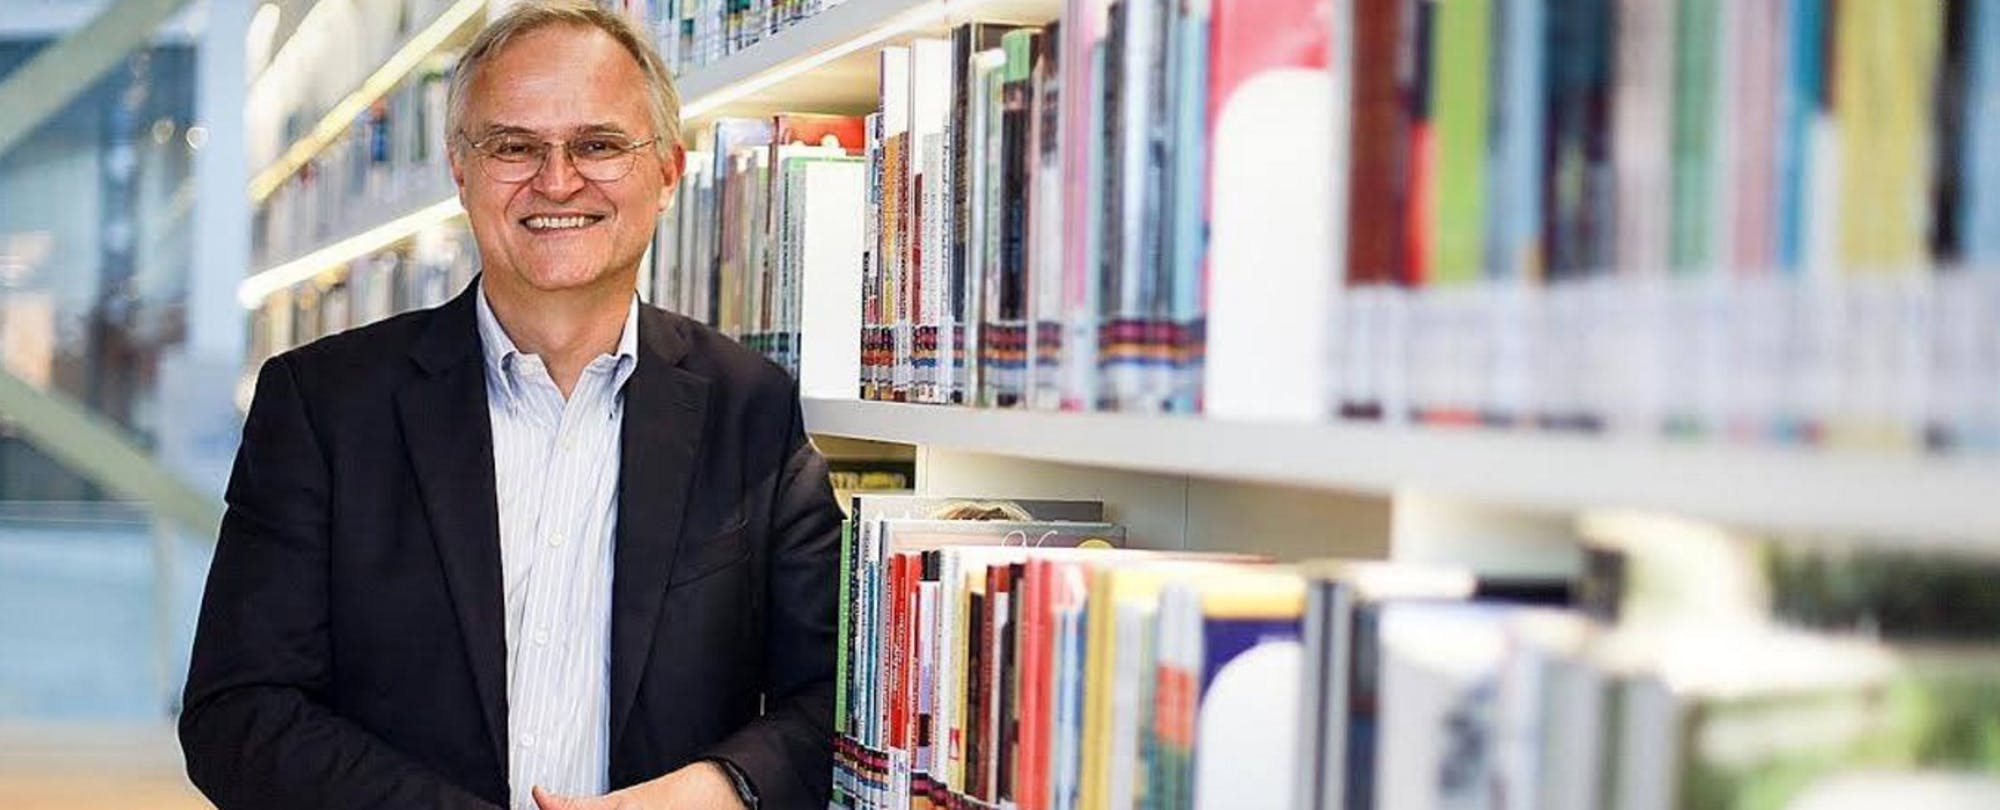 Learning Science Researcher, Bror Saxberg Joins Chan Zuckerberg Initiative